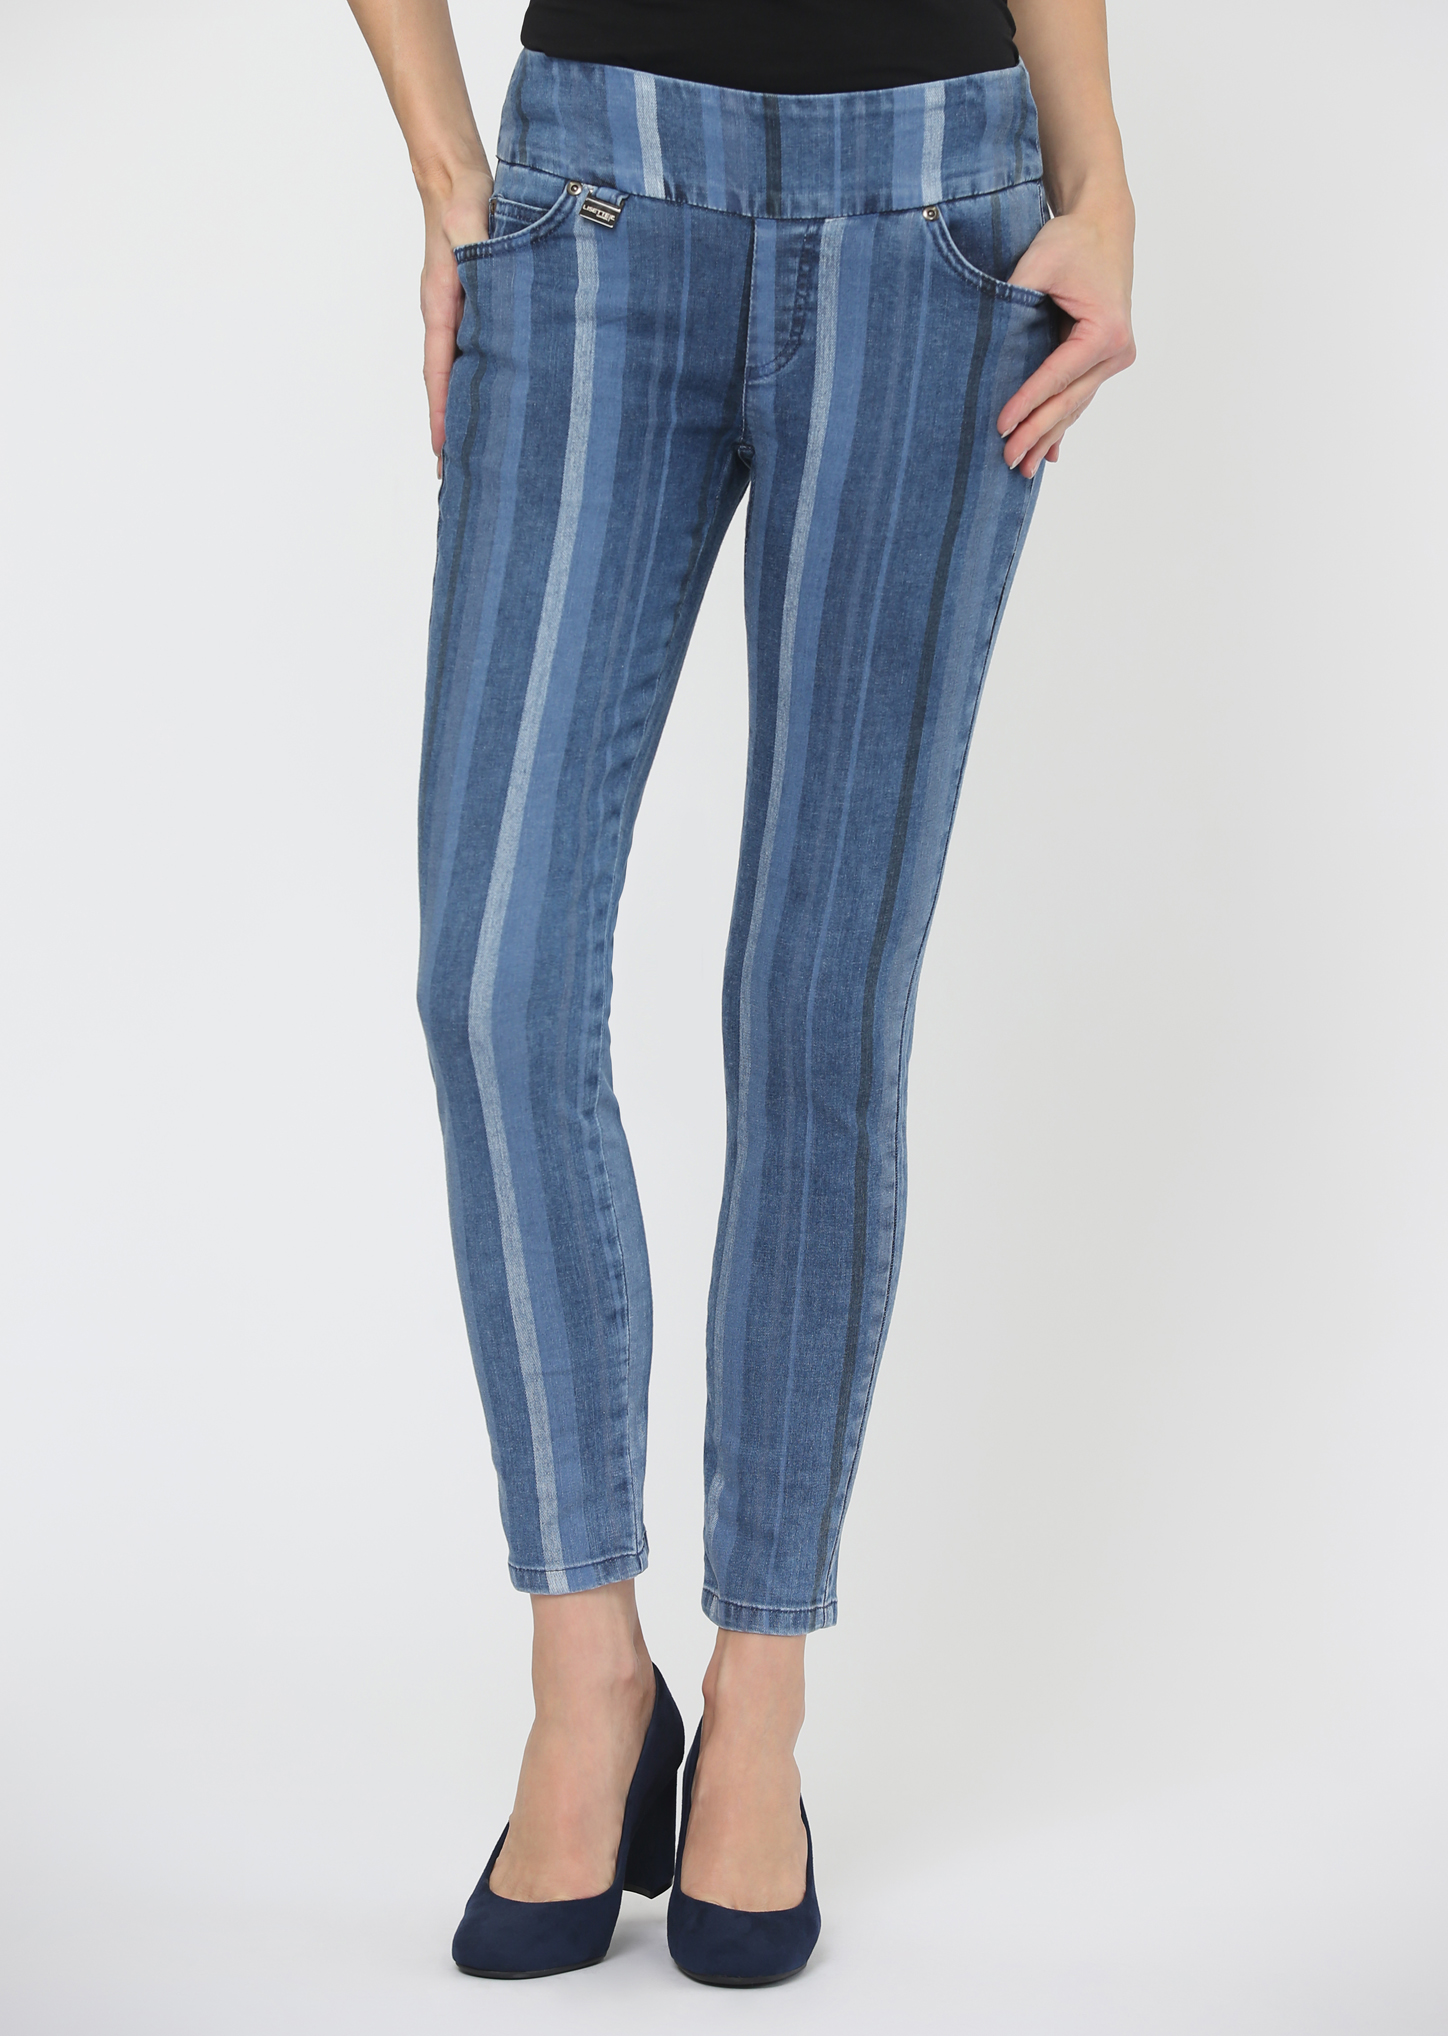 Lisette L. Slim Jean Style 628933 Petra Stripe Denim, Color Blue